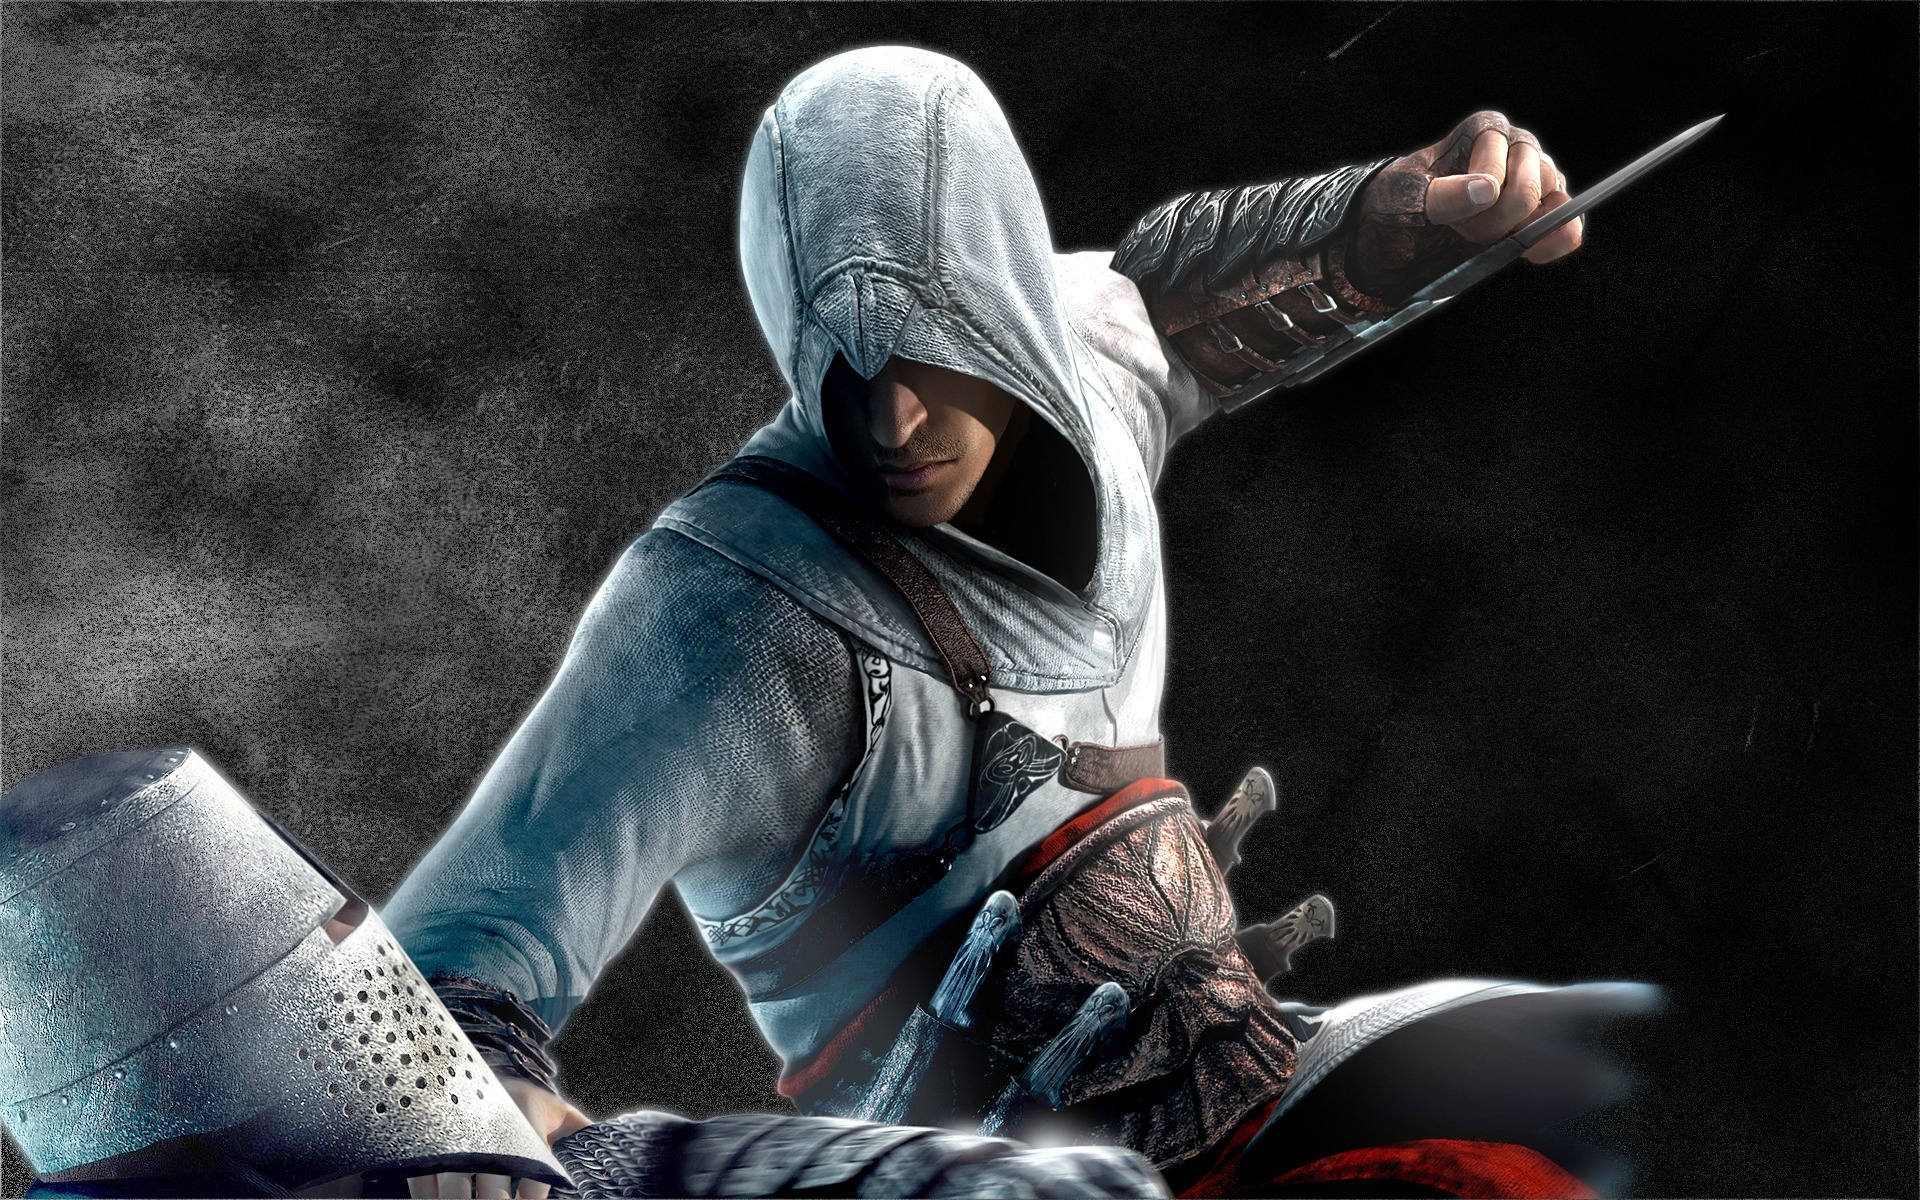 assassins creed Altair knight